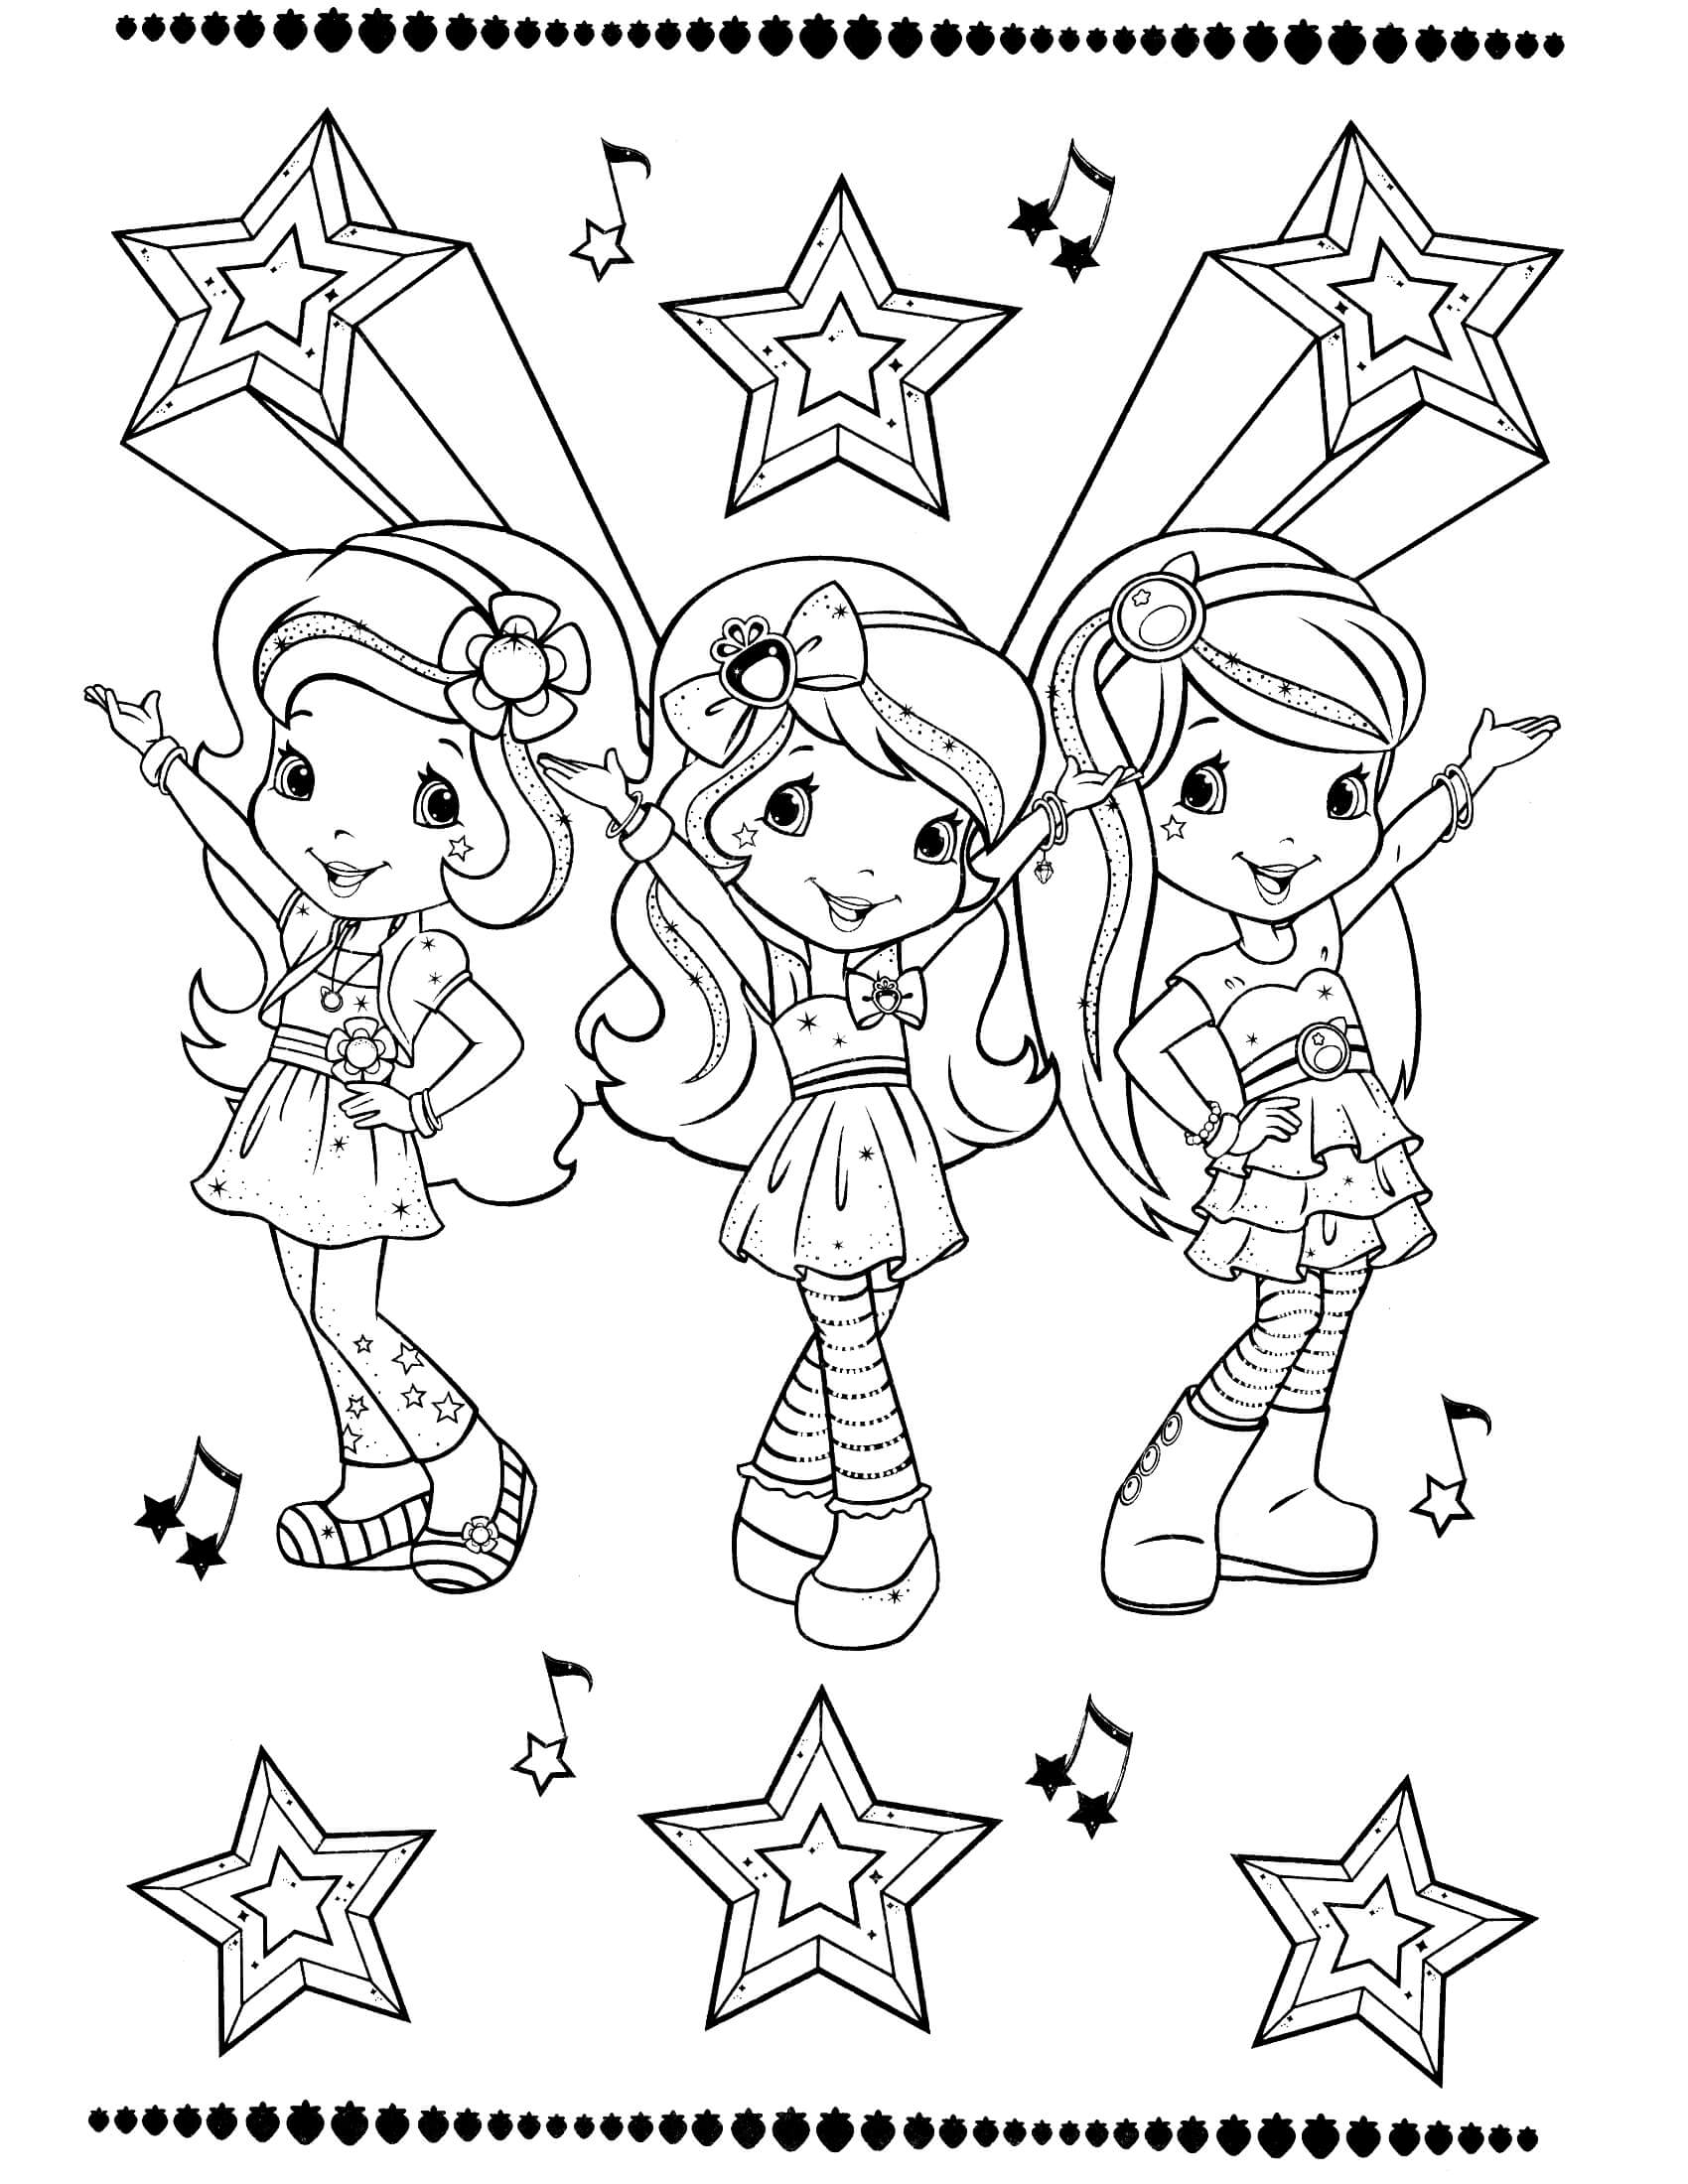 strawberry girl coloring pages hula dancer coloring page at getcoloringscom free coloring strawberry girl pages